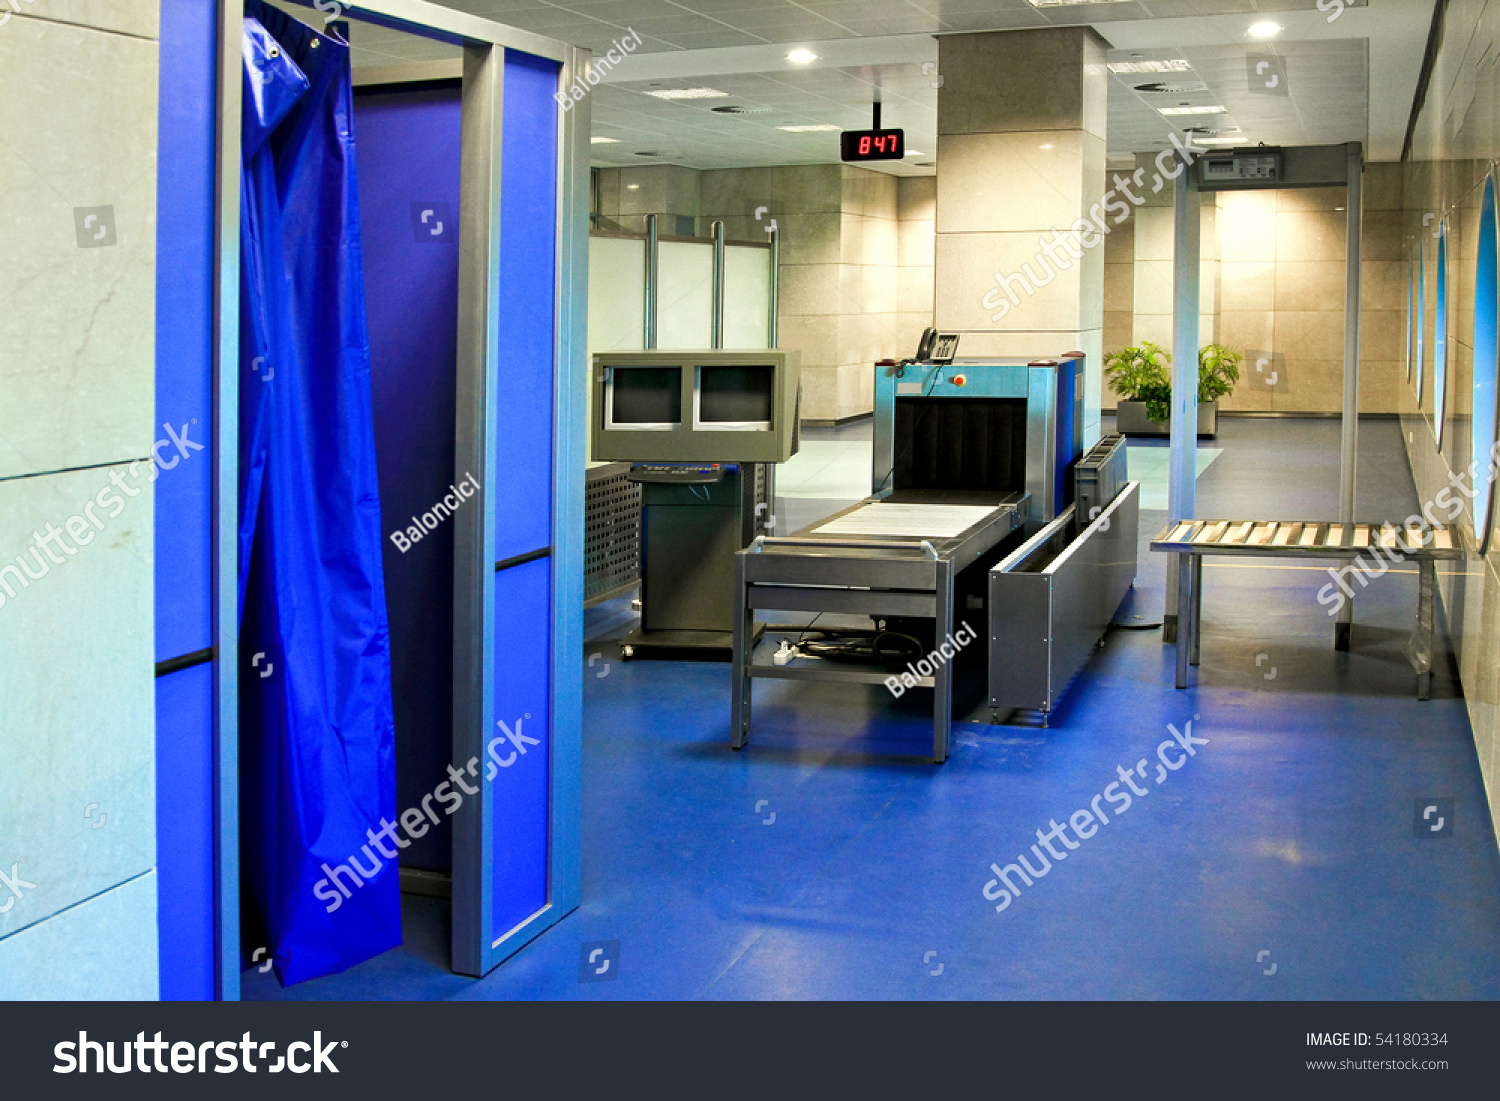 Airport Security Check Strip Search Cabin Stock Photo